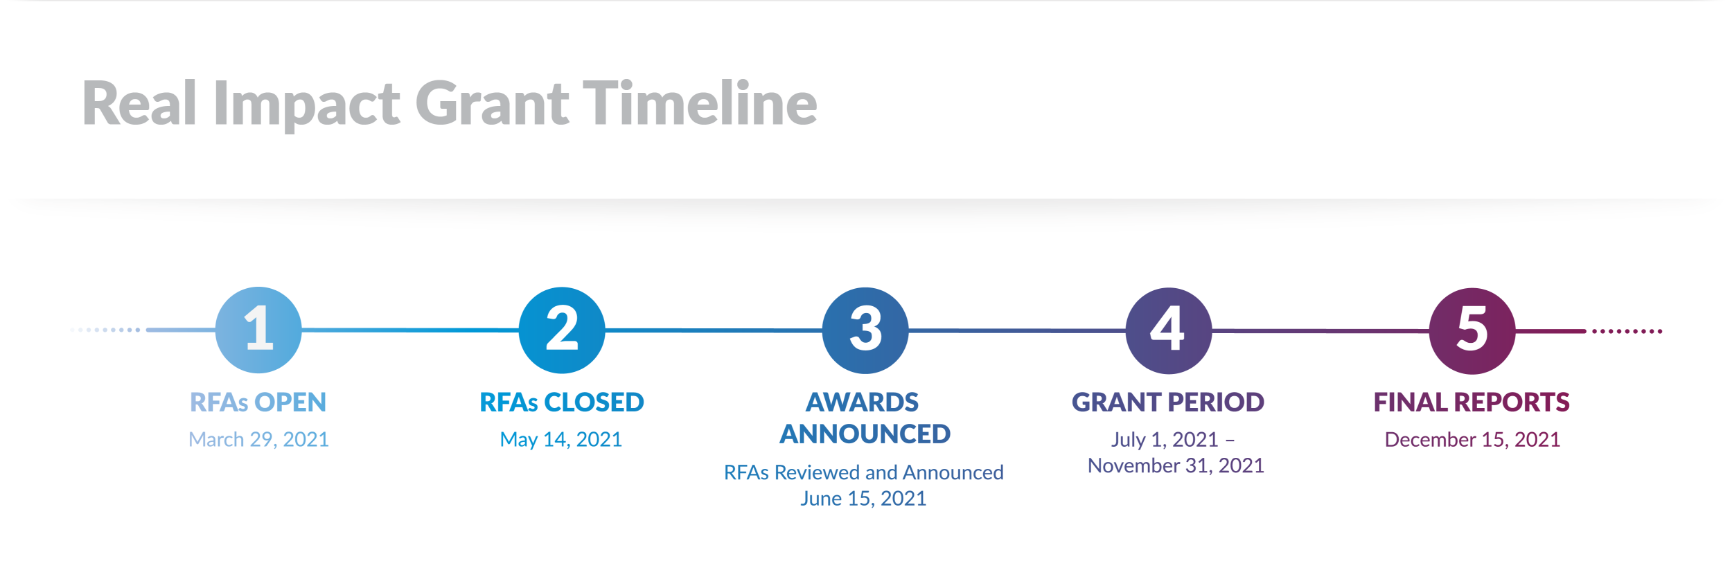 Real Impact Grant Timeline. 1: RFAs Open. March 29,2021. 2: RFAs Closed. May 14, 2021. 3: Awards Announced. RFAs Reviewed and Announced June 15, 2021. 4: Grant Period. July 1, 2021 - November 31, 2021. 5: Final Reports. December 15, 2021.